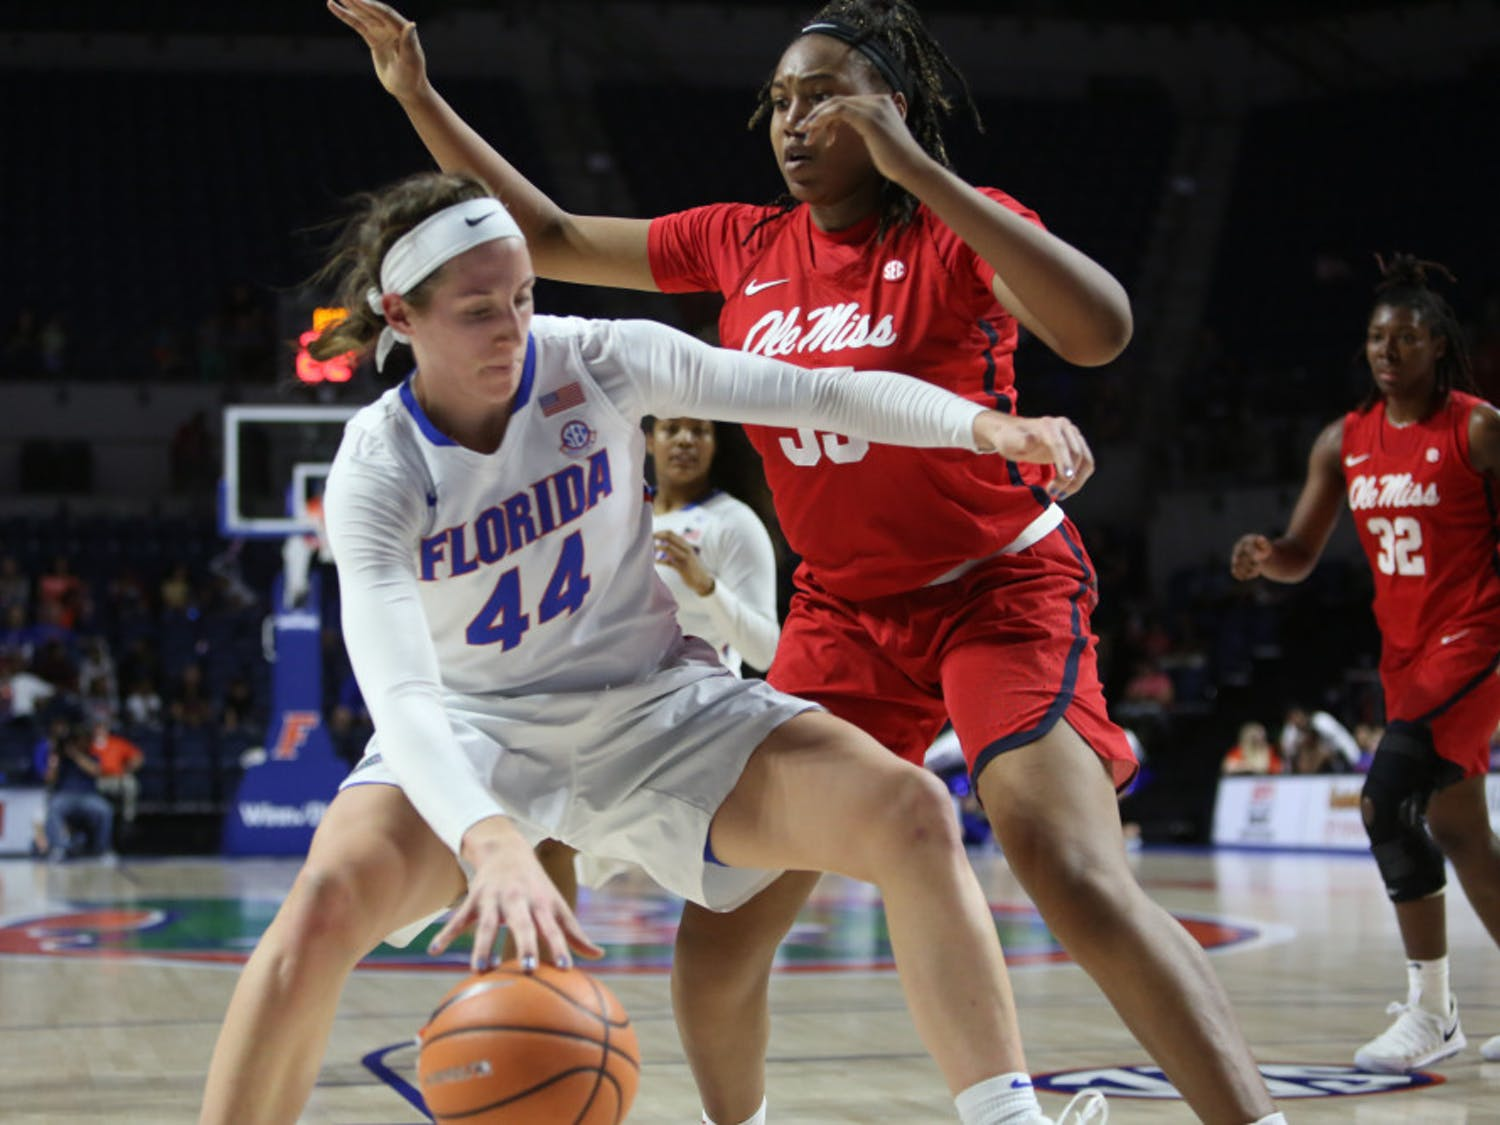 Senior forward Haley Lorenzen is nearly averaging a double-double (12.9 points and 9.6 rebounds per game) this season. On Tuesday, she was named SEC Player of the Week after helping UF to its first two conference wins.